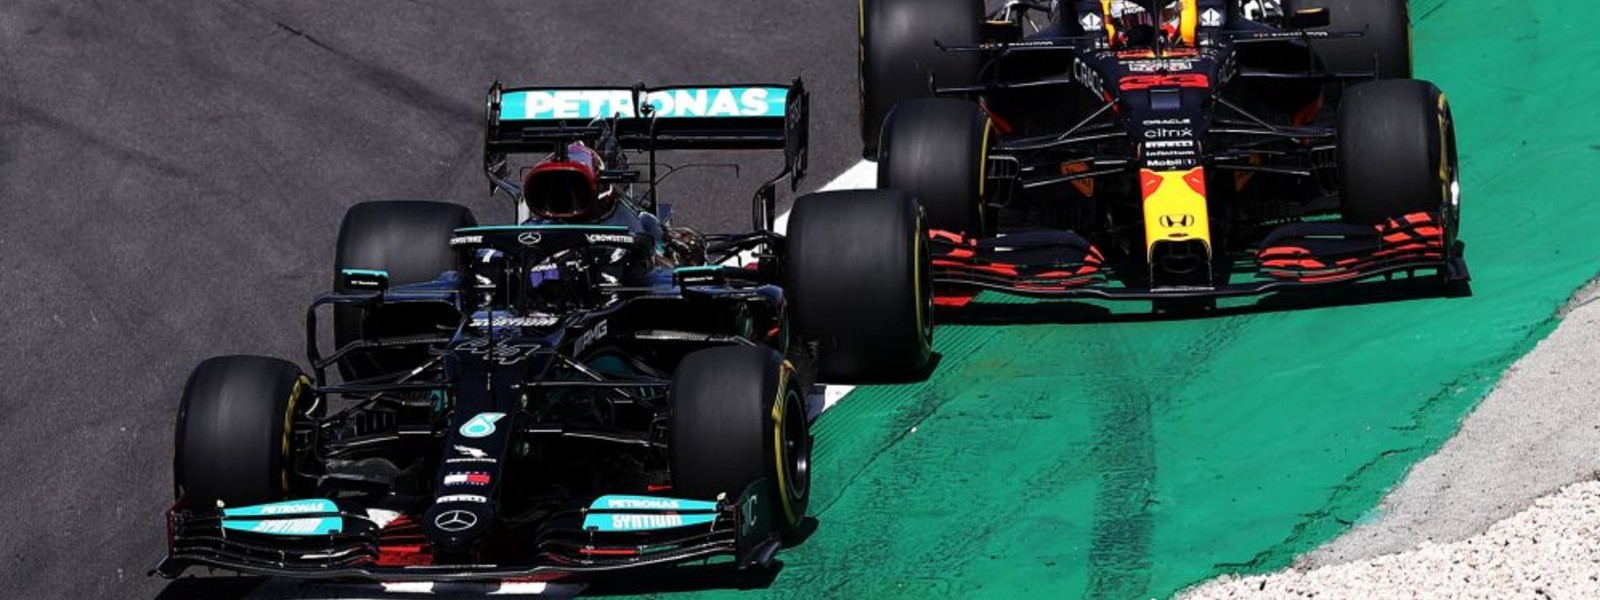 Hamilton takes victory in Portugal after crucial overtakes on Verstappen and Bottas